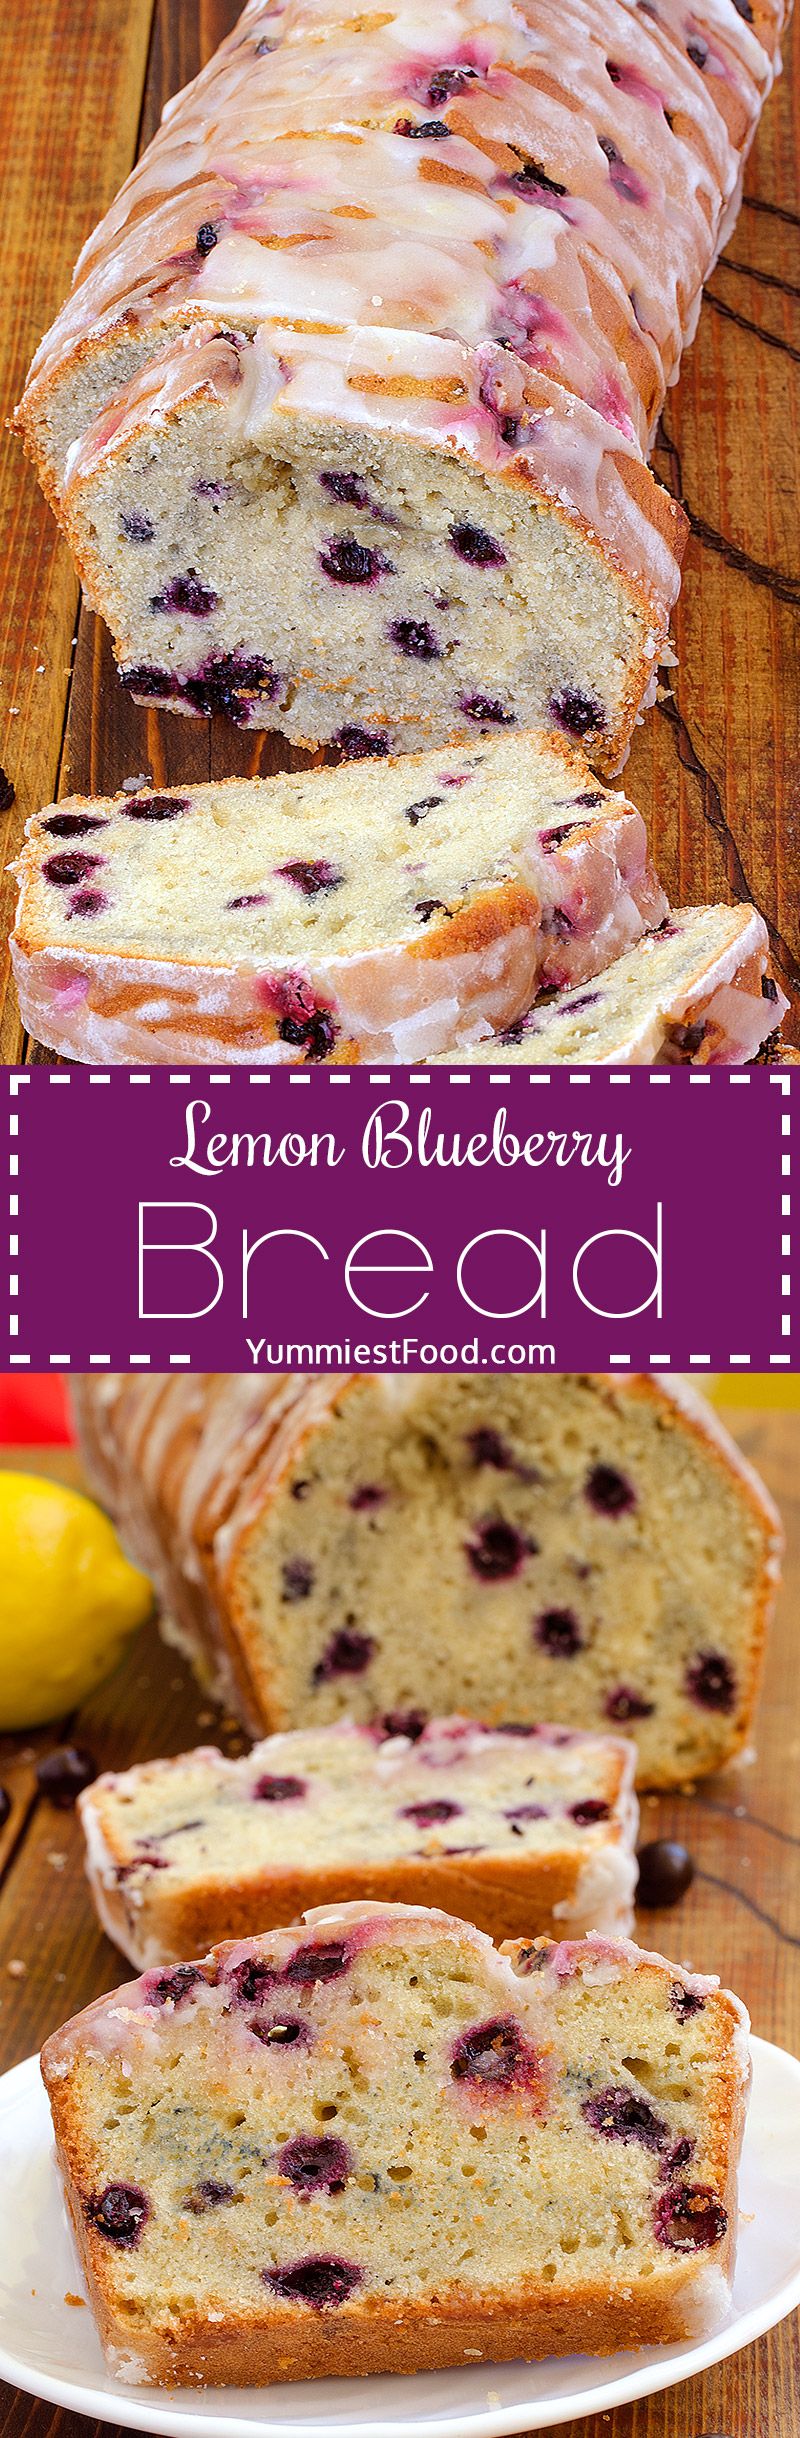 Lemon Blueberry Bread is quick, delicious and easy to make.